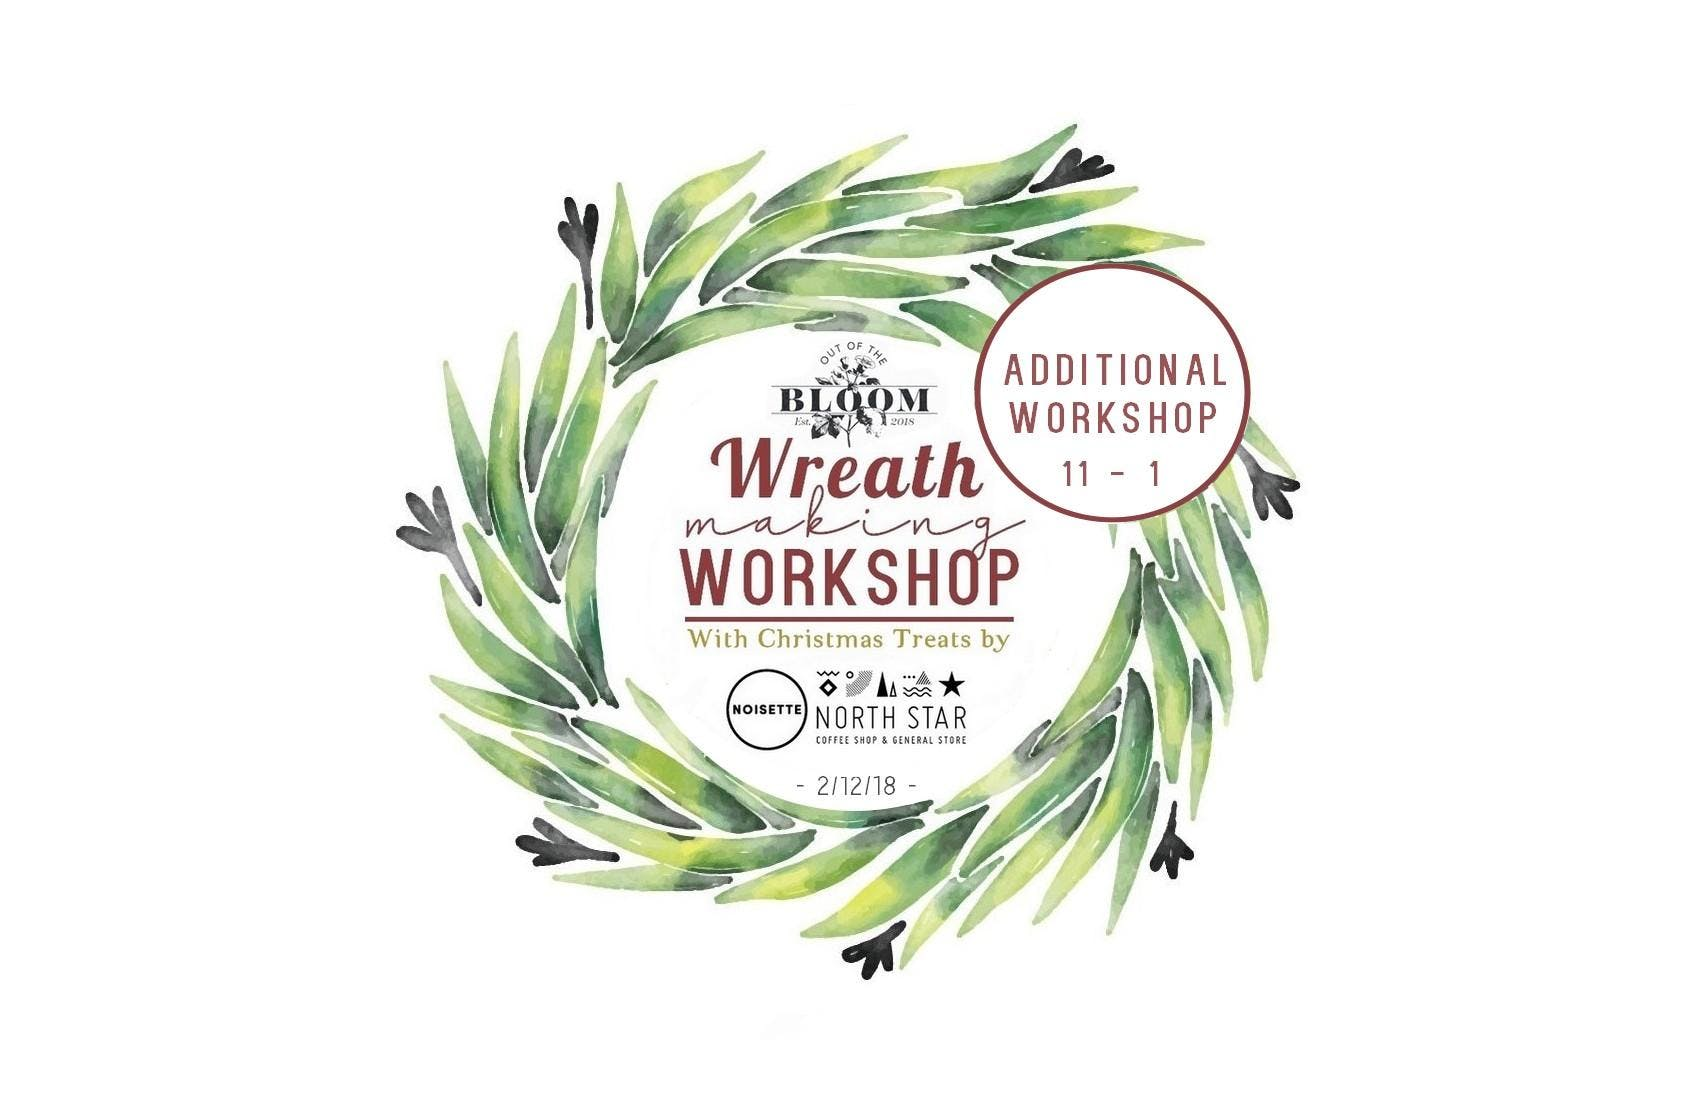 Christmas Wreath Making Workshop Additional At North Star